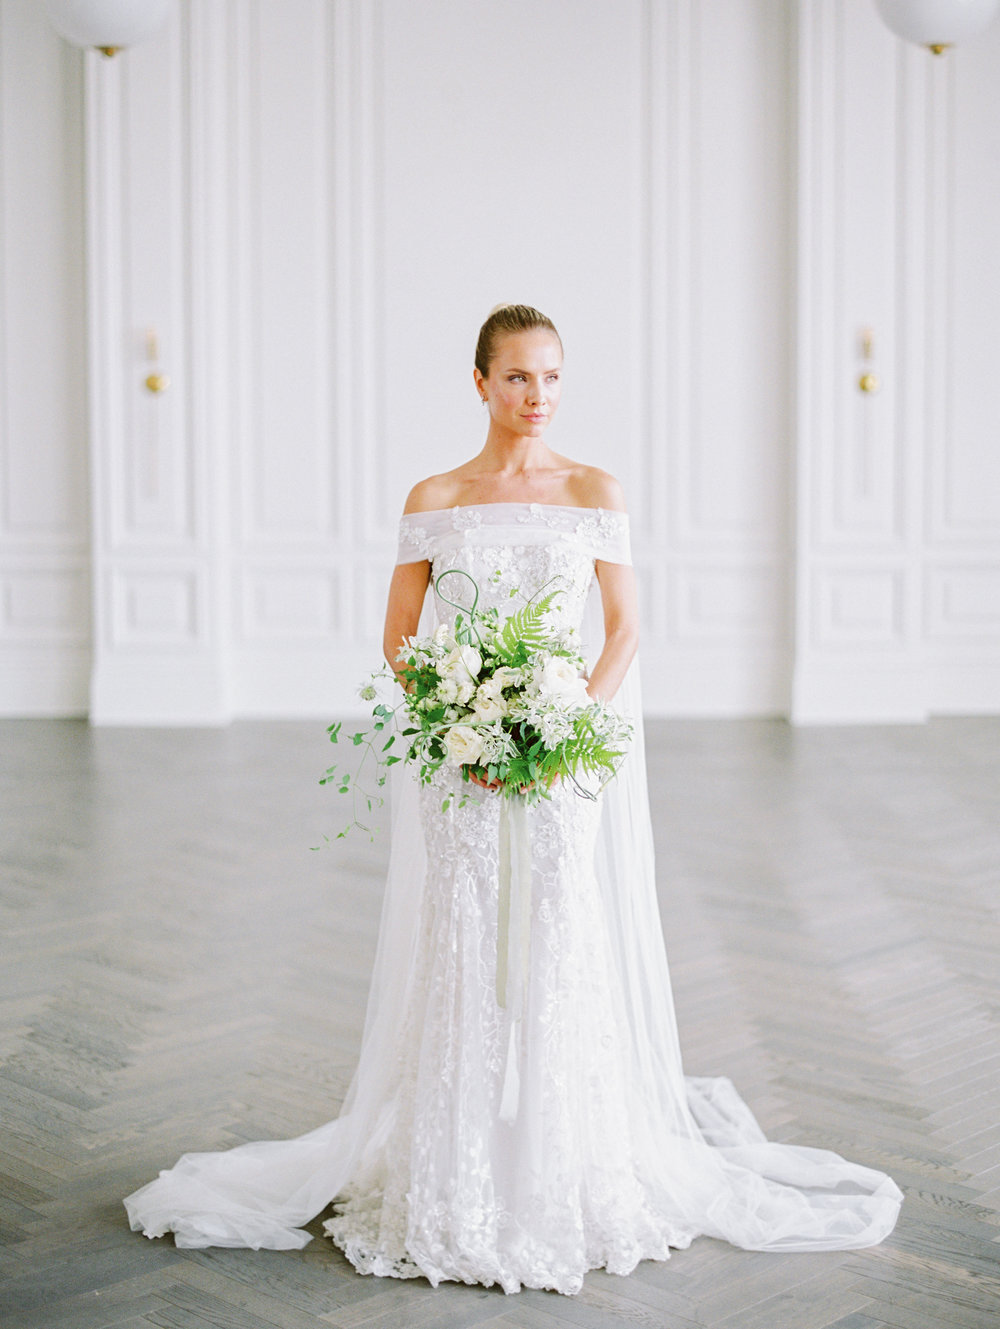 Spring Wedding Inspiration at the Adolphus Hotel